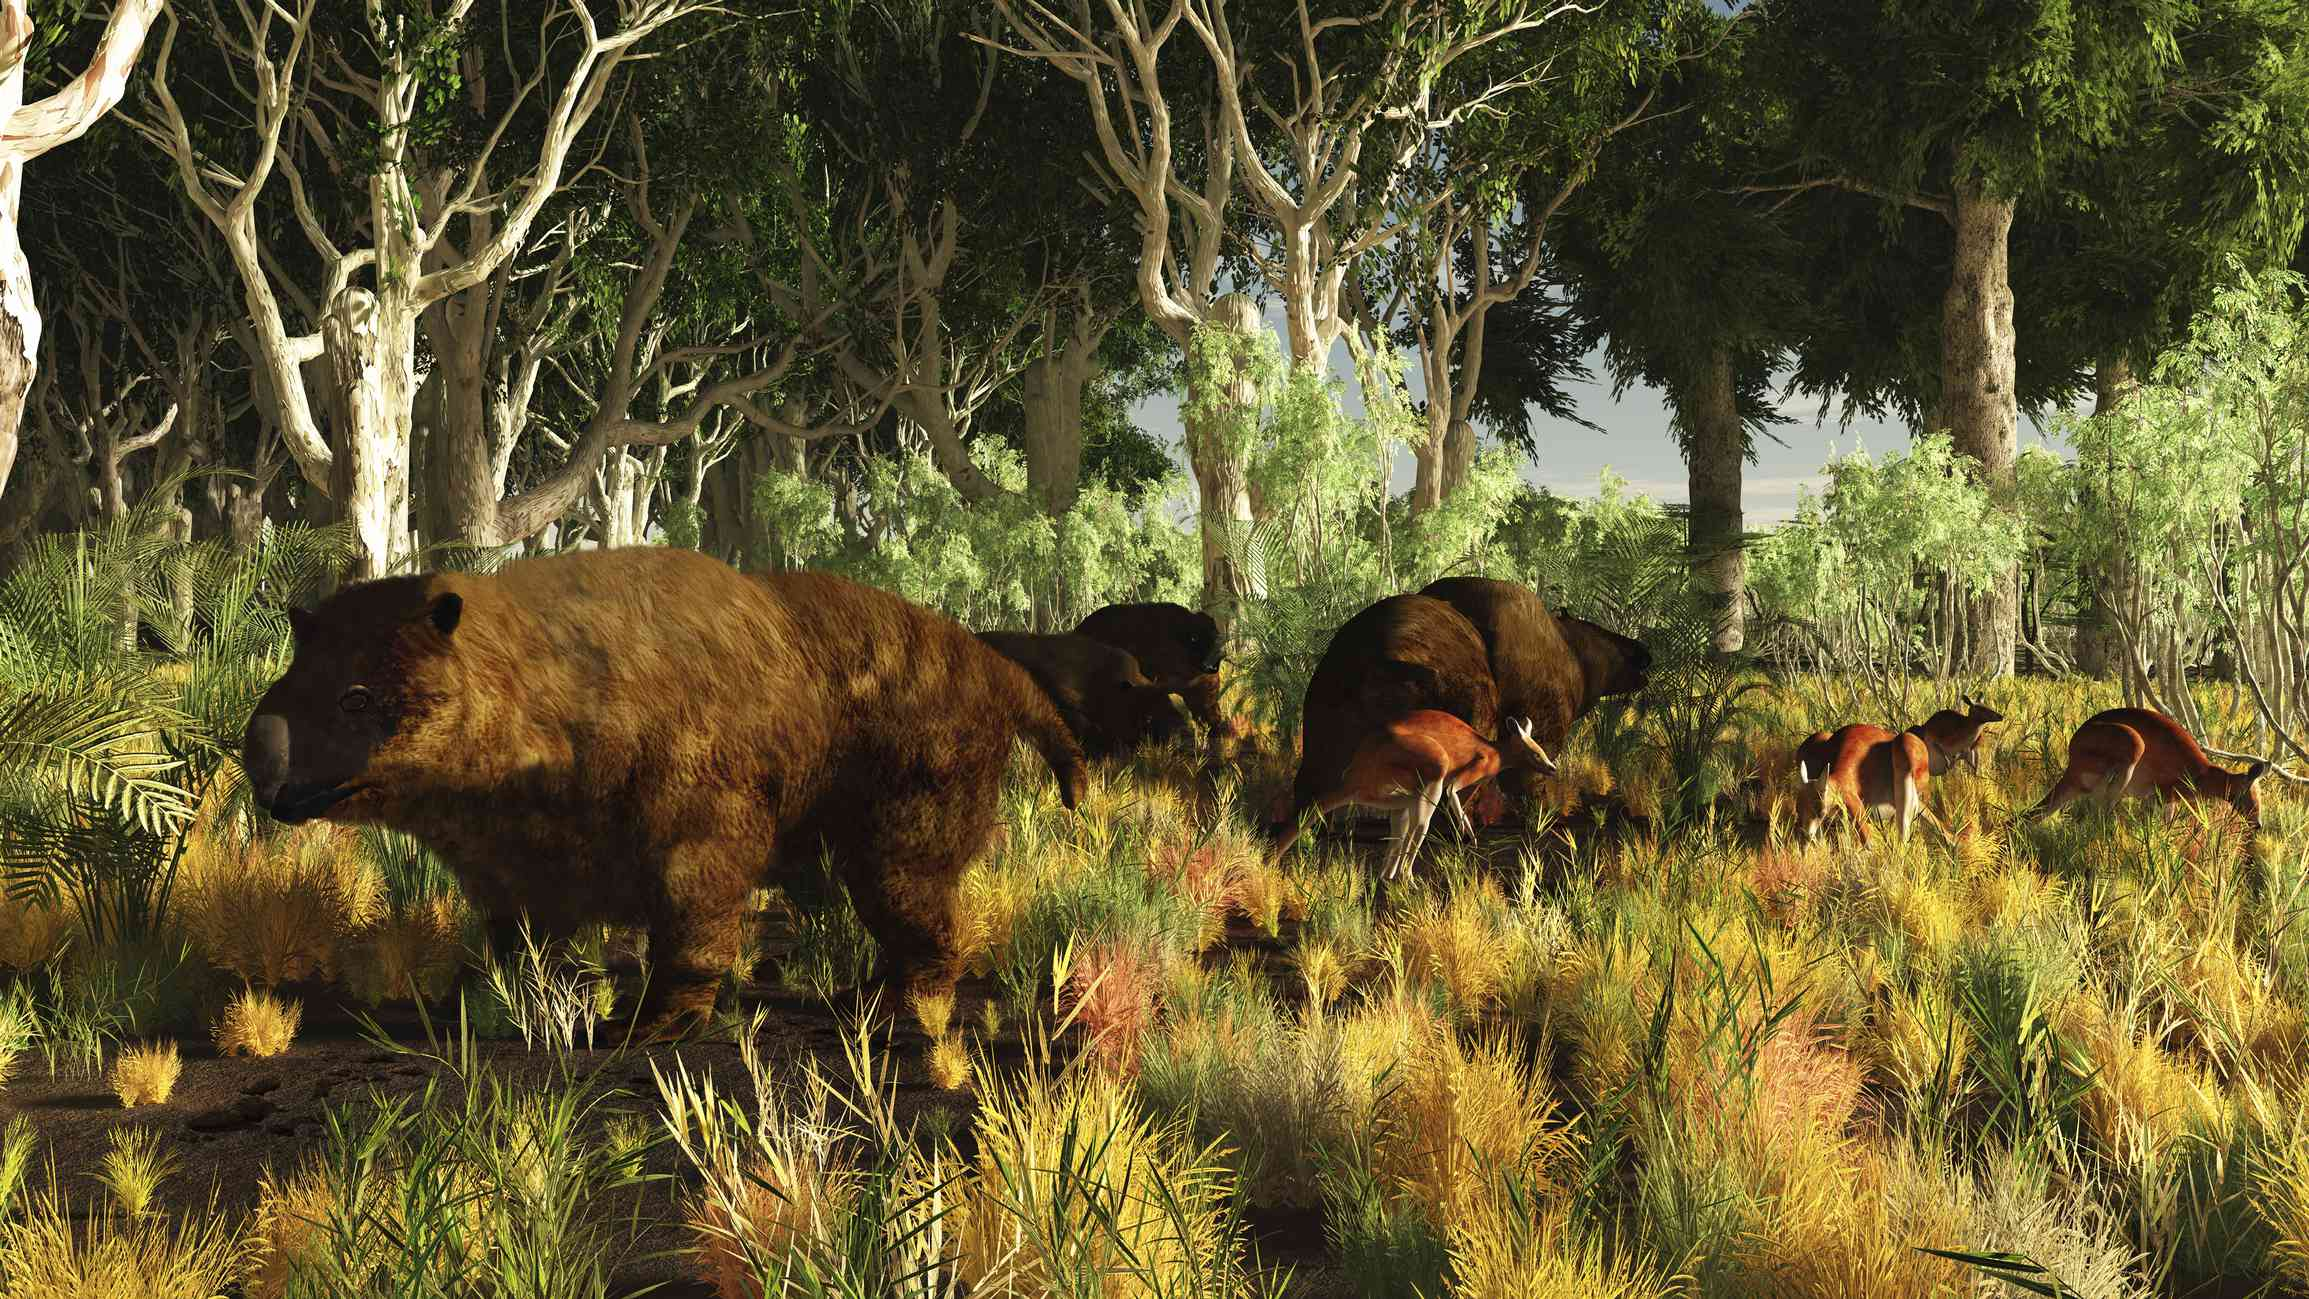 illustration of giant wombats standing in jungle clearing